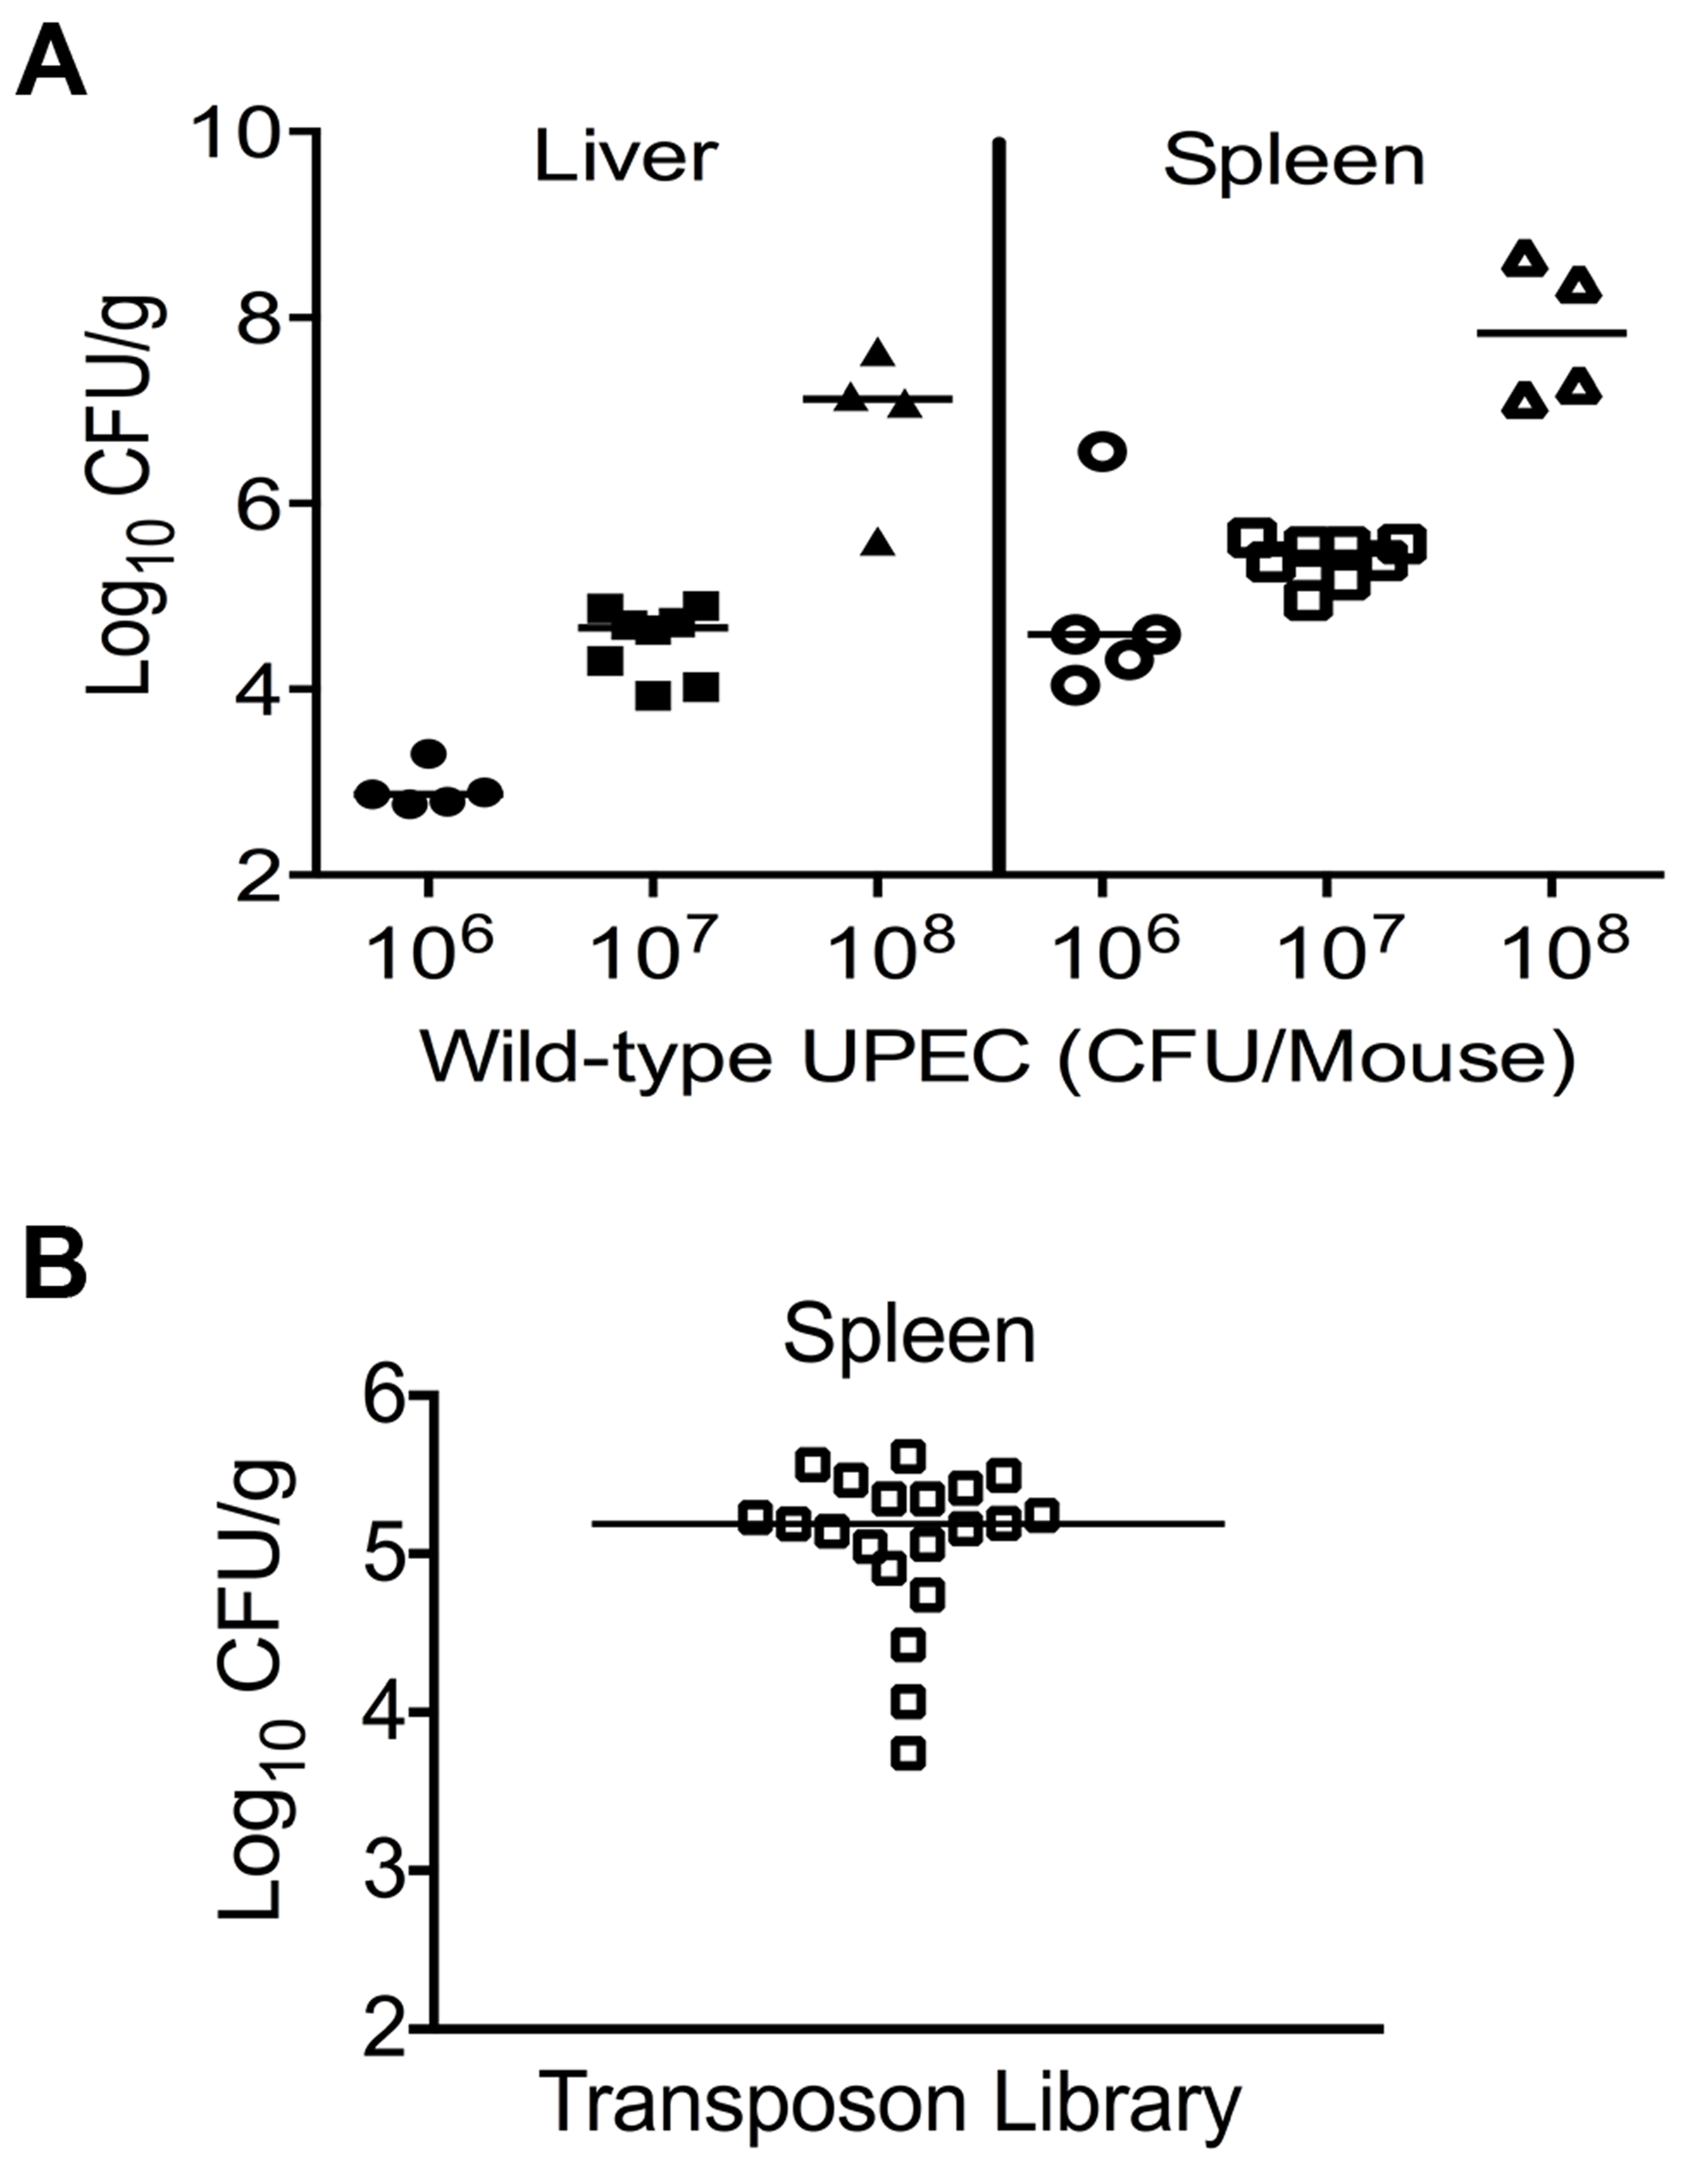 Colonization of uropathogenic <i>E. coli</i> during systemic disseminated infection in mice.